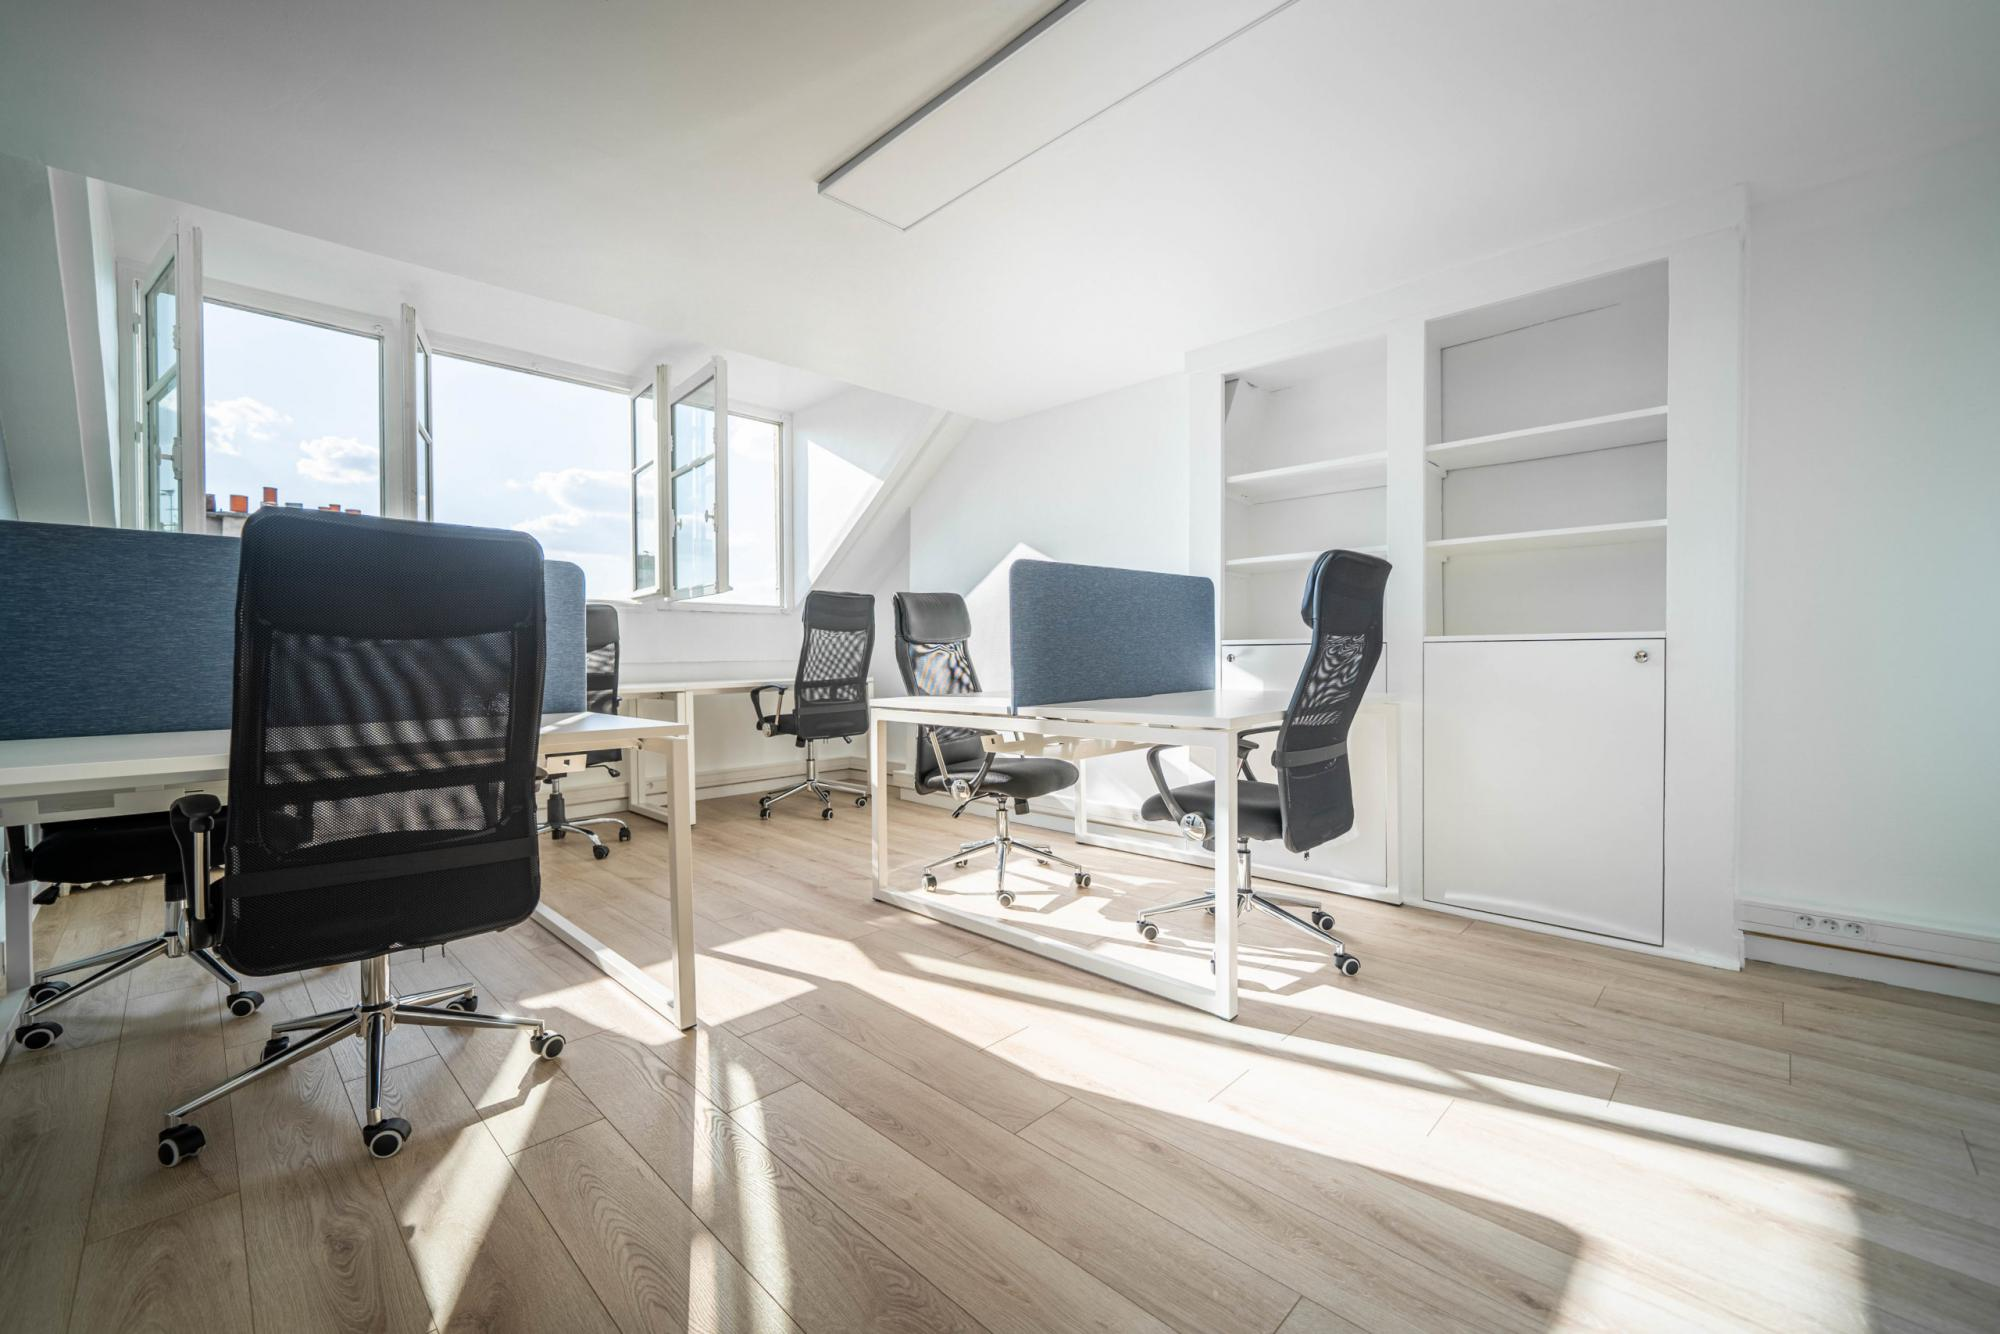 Various office spaces in the office building